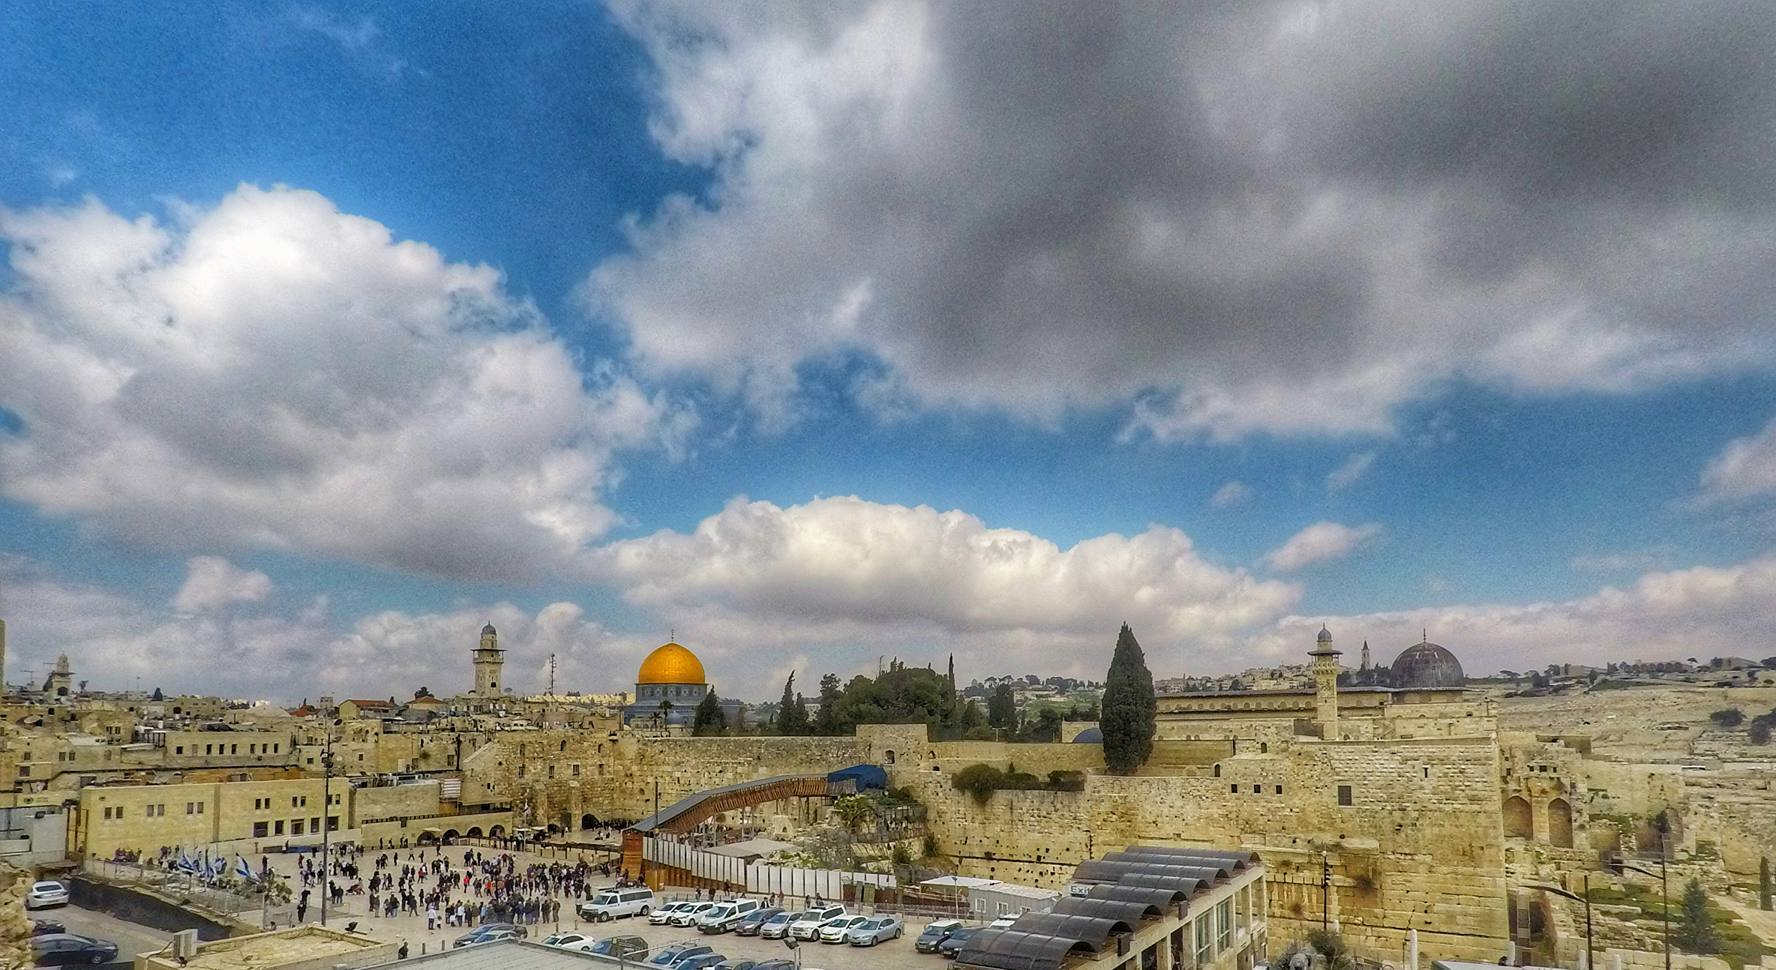 Dome Of The Rock - Top Jerusalem Attraction to See